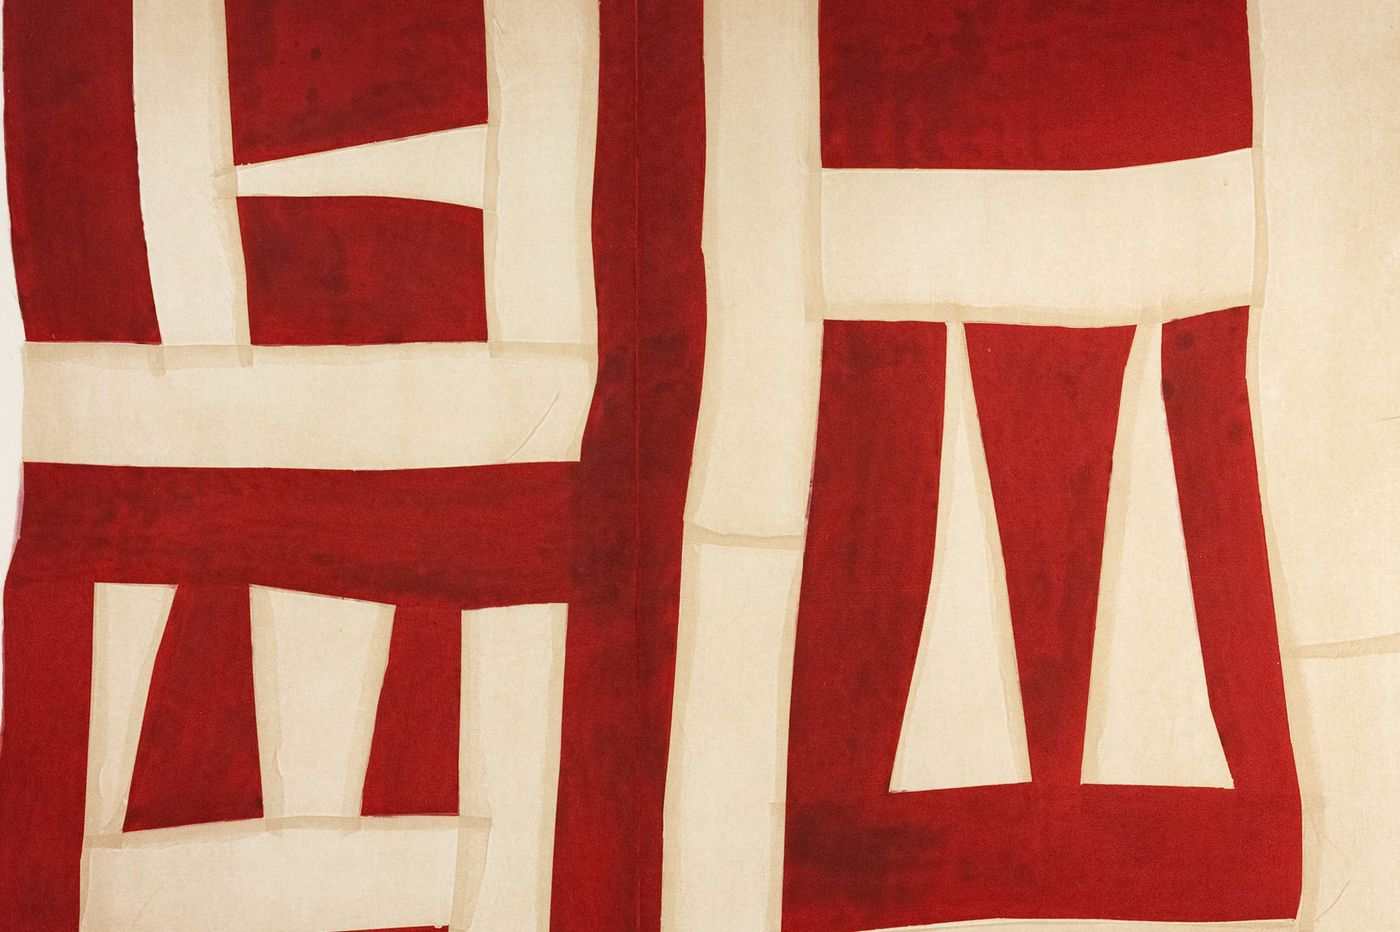 PAFA acquires California press' prints by African American artists